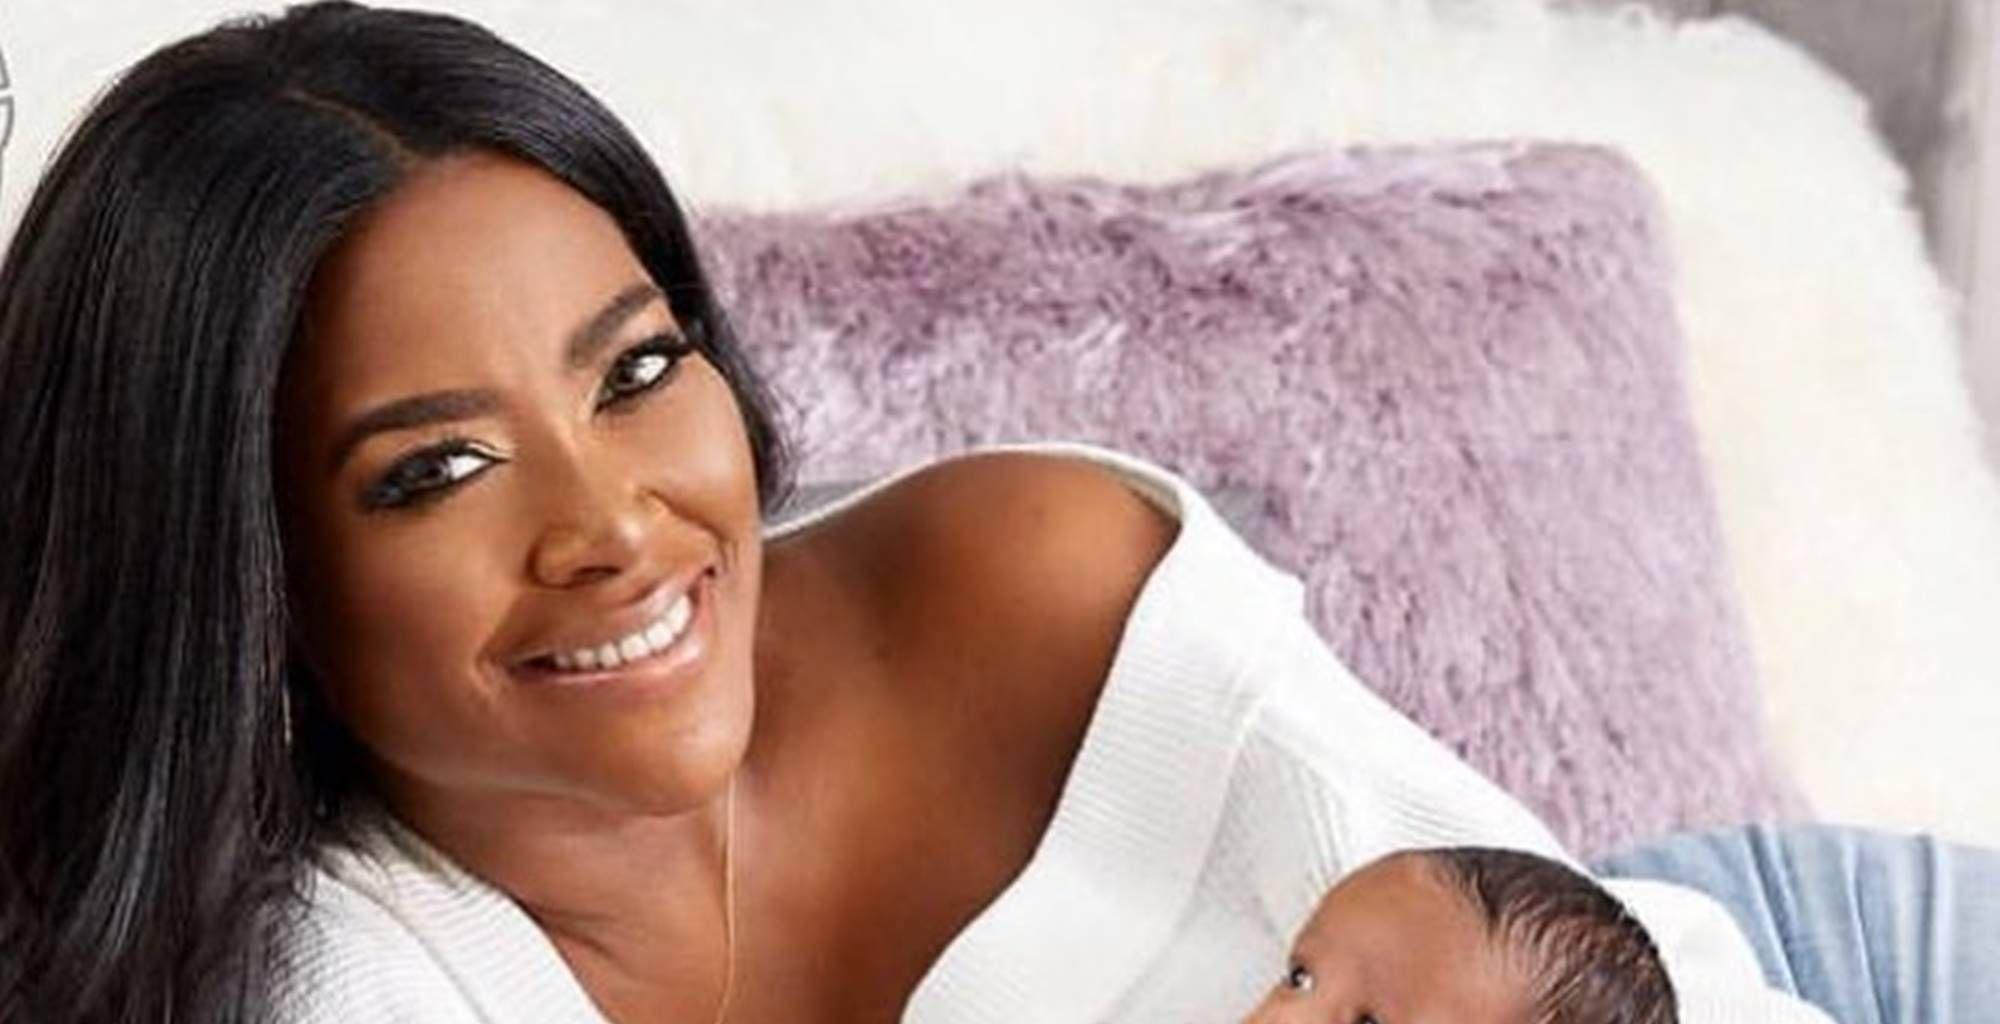 Kenya Moore Shows Off Her Hourglass Figure And Fans Are Blown Away By Her Tiny Waist